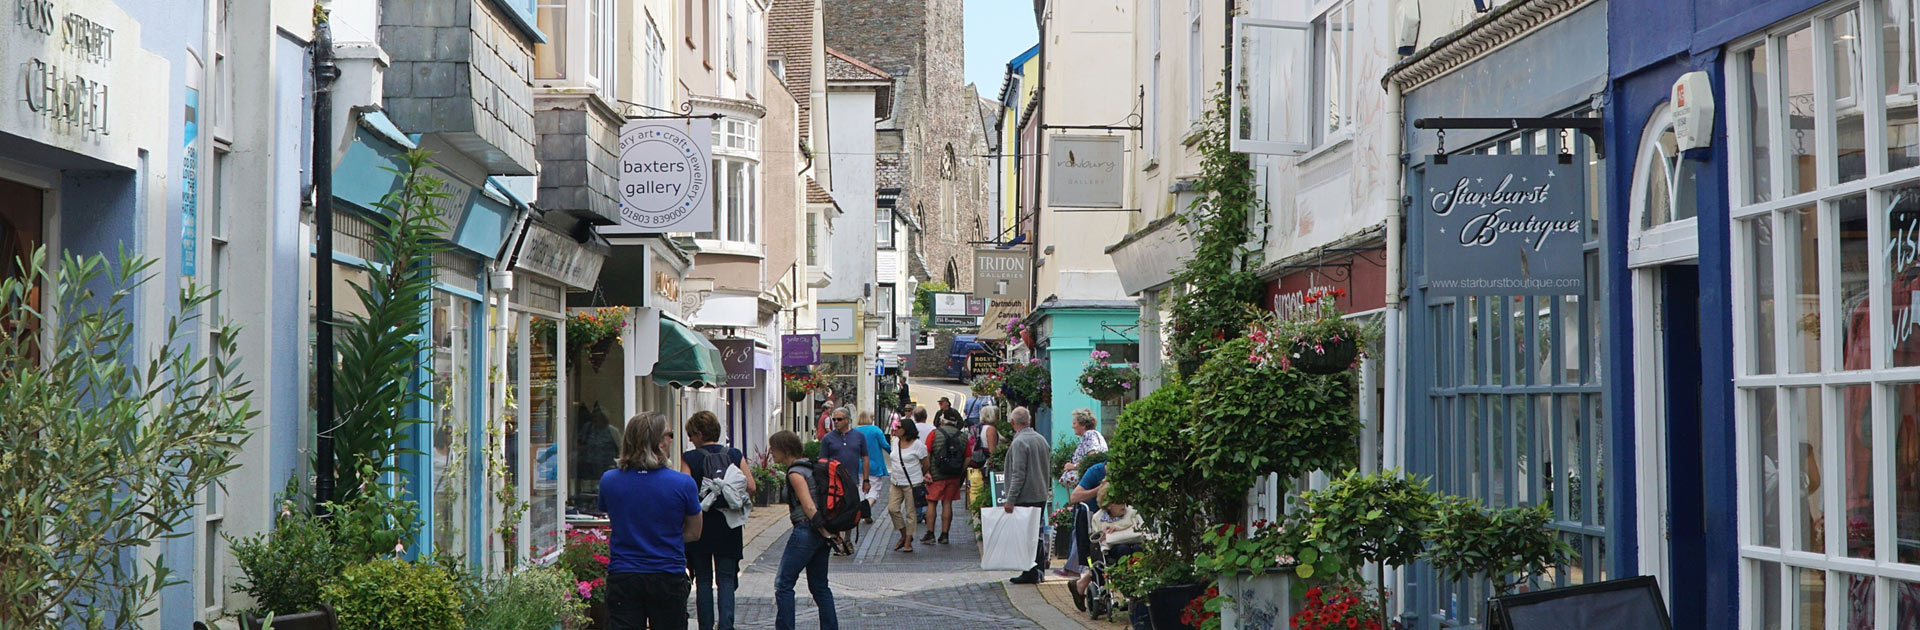 Dartmouth Boutique Shops and Cafes